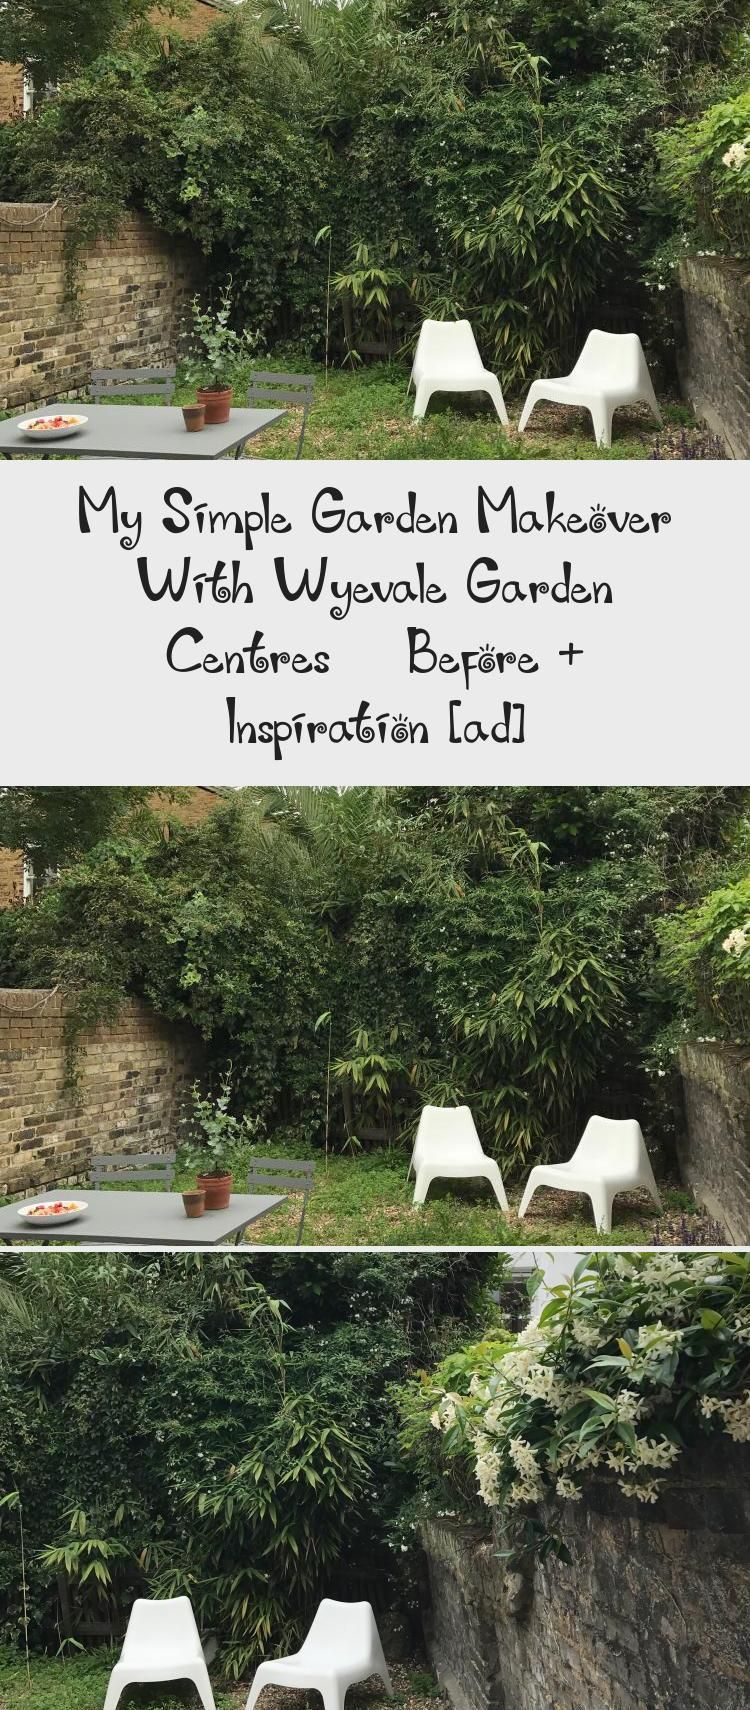 My Simple Garden Makeover With Wyevale Garden Centres Before